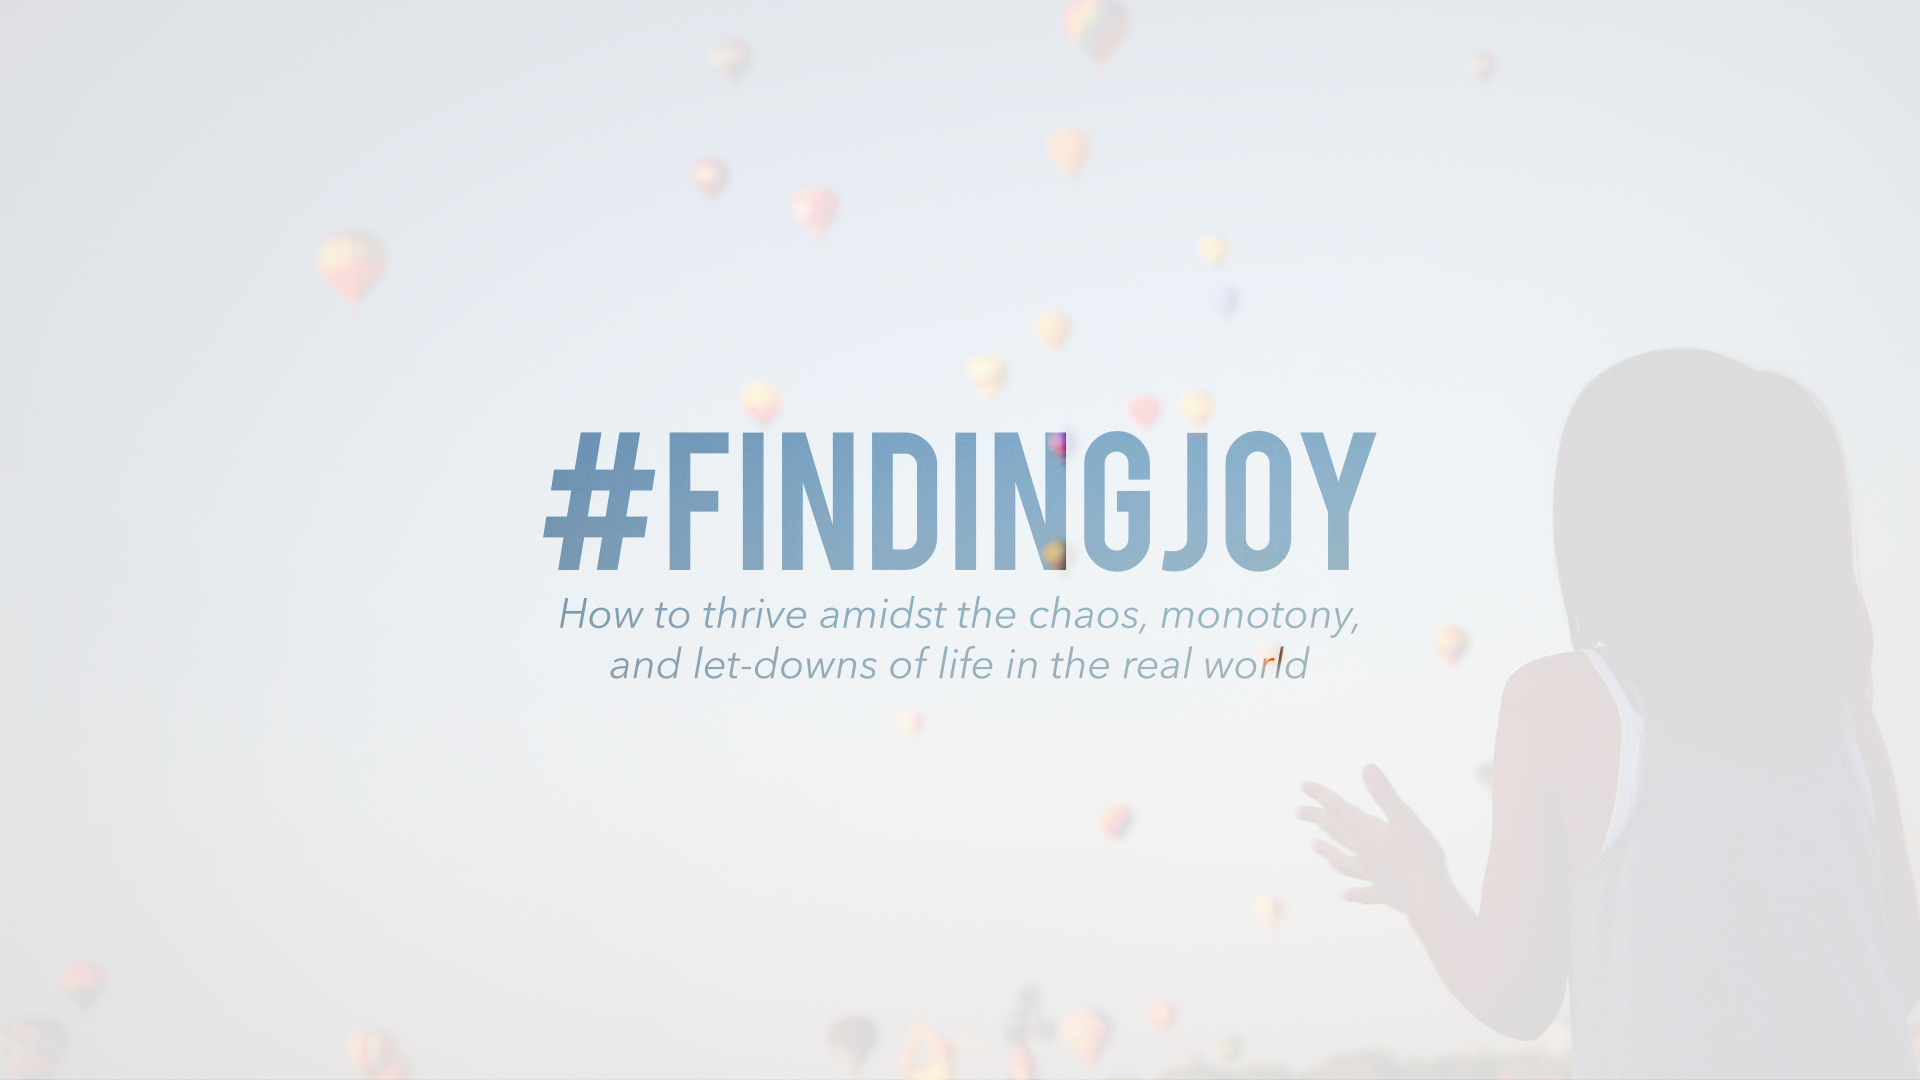 You want joy. Here's how to find it in the real world.